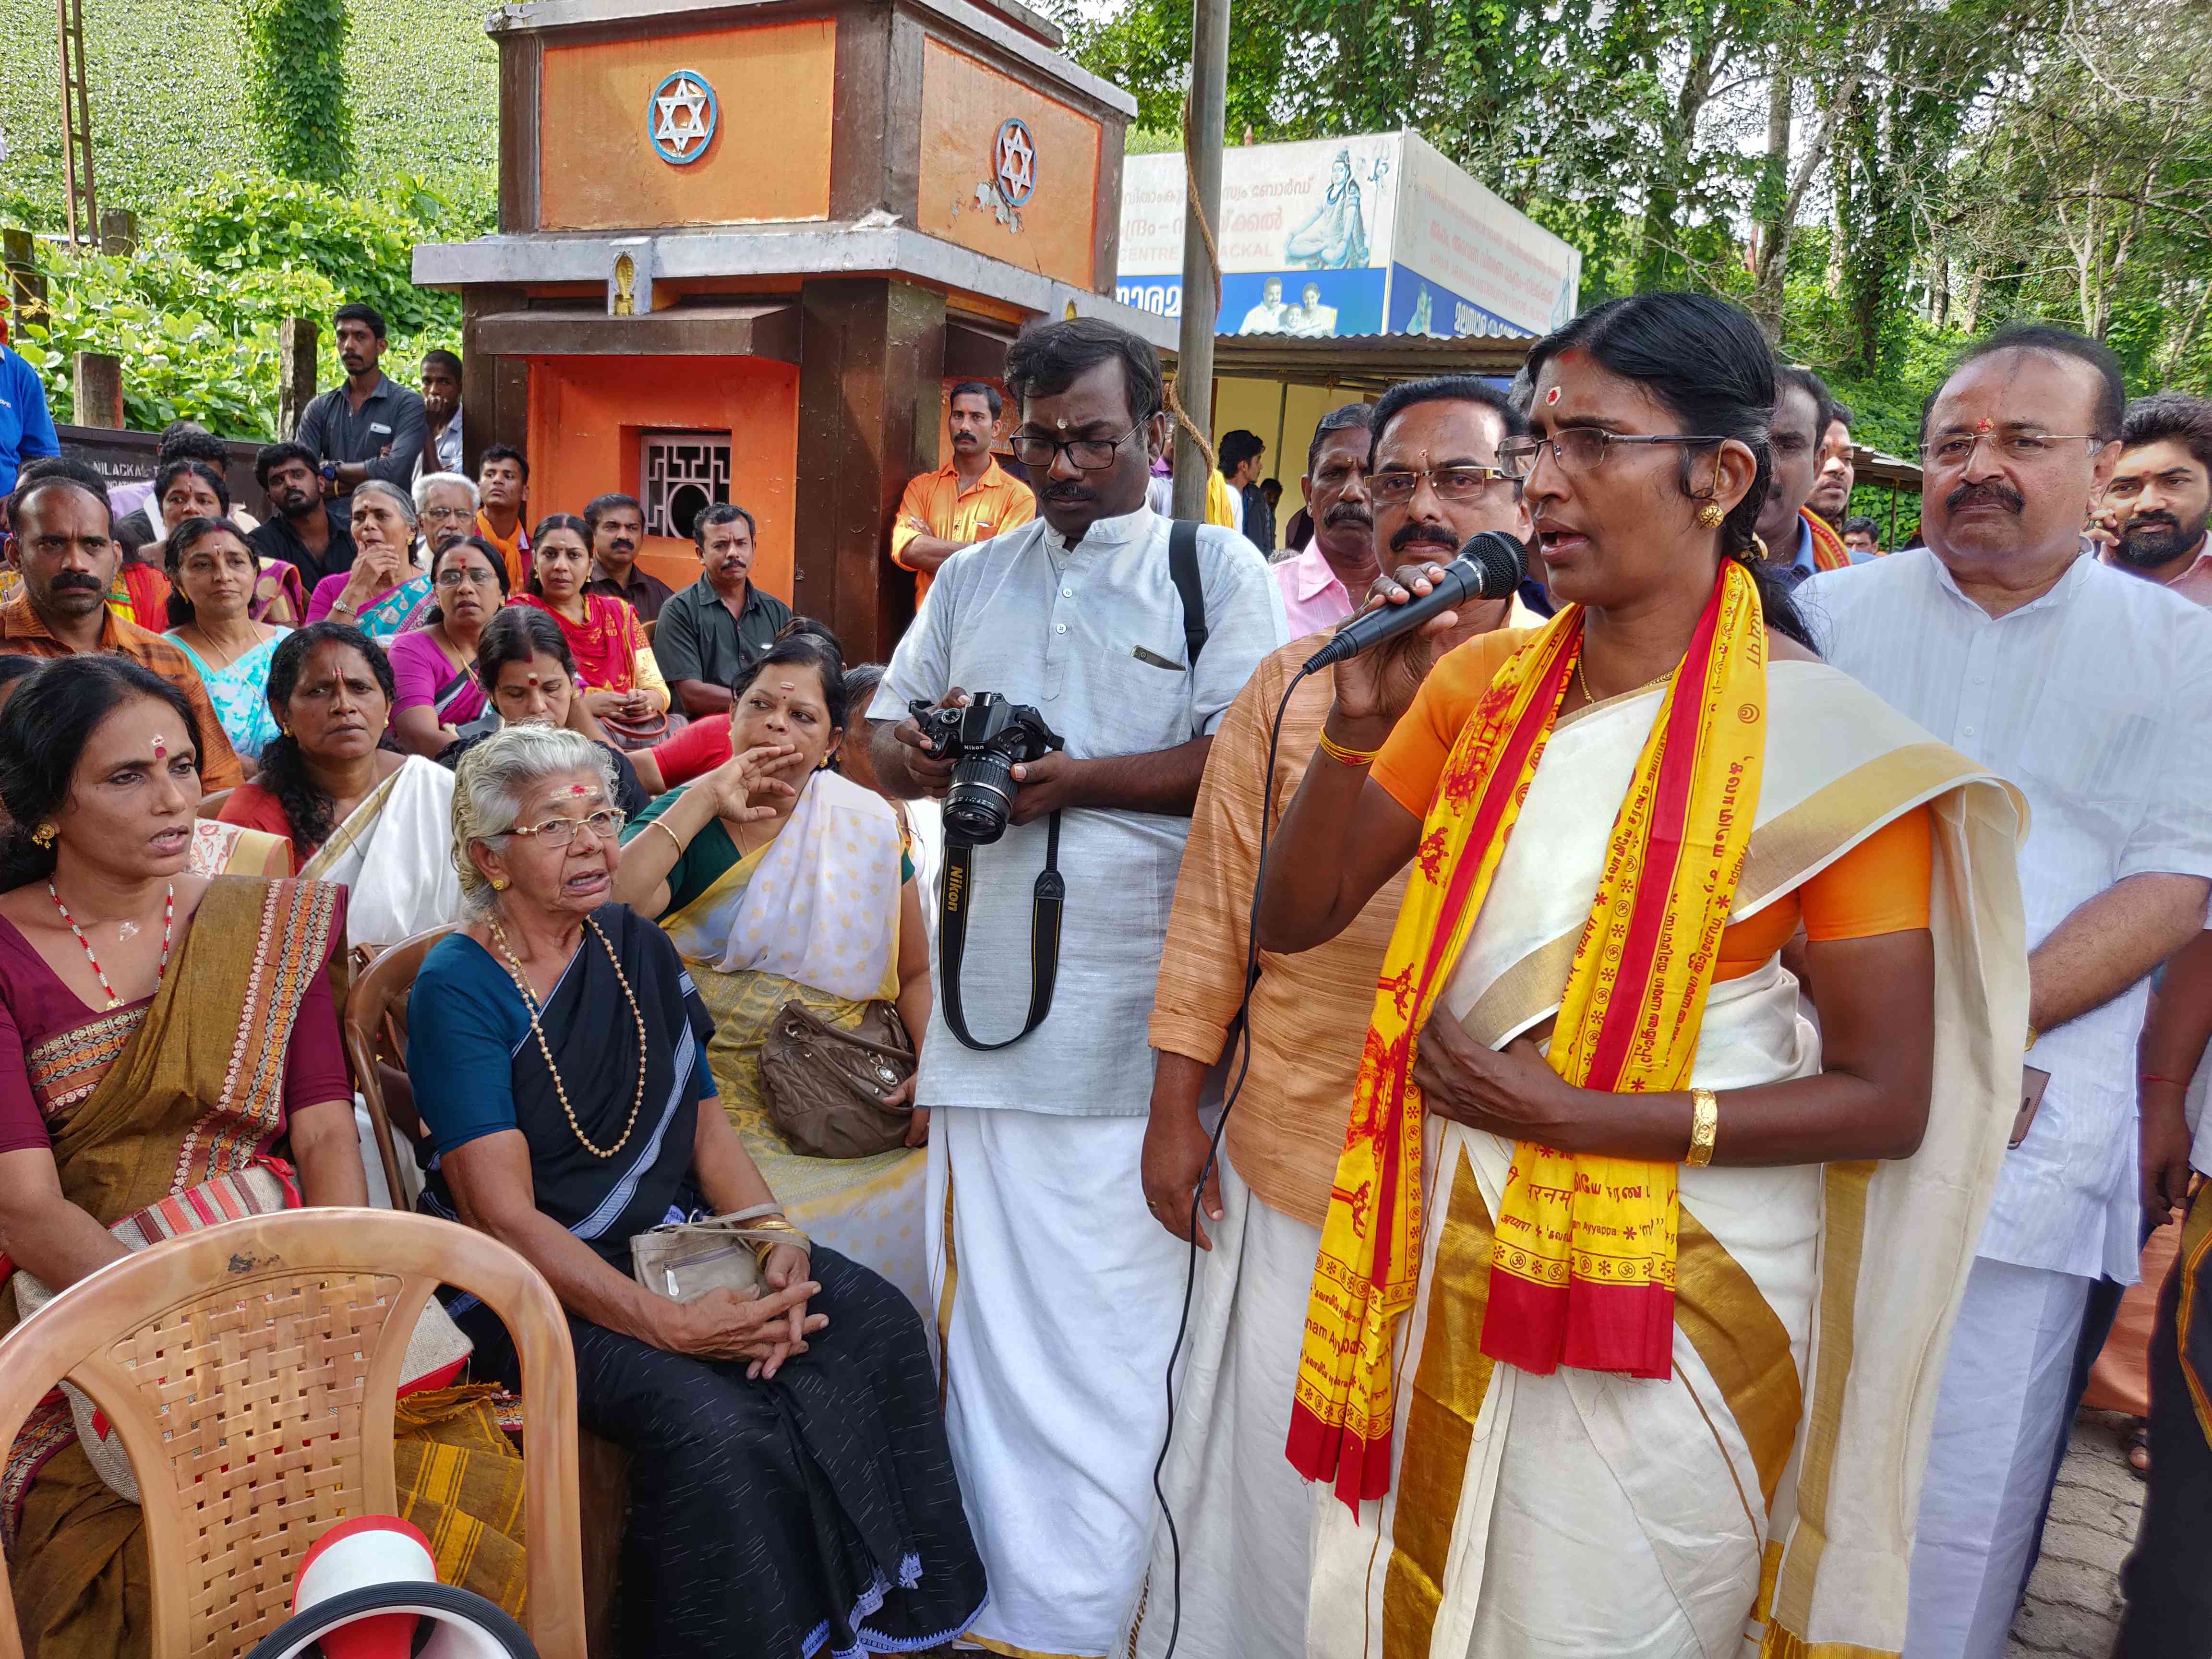 KP Sasikala of the Hindu Aikya Vedi, which is part of the Sangh Parivar, addresses protestors in Nilakkal on Wednesday. (Credit: TA Ameerudheen)